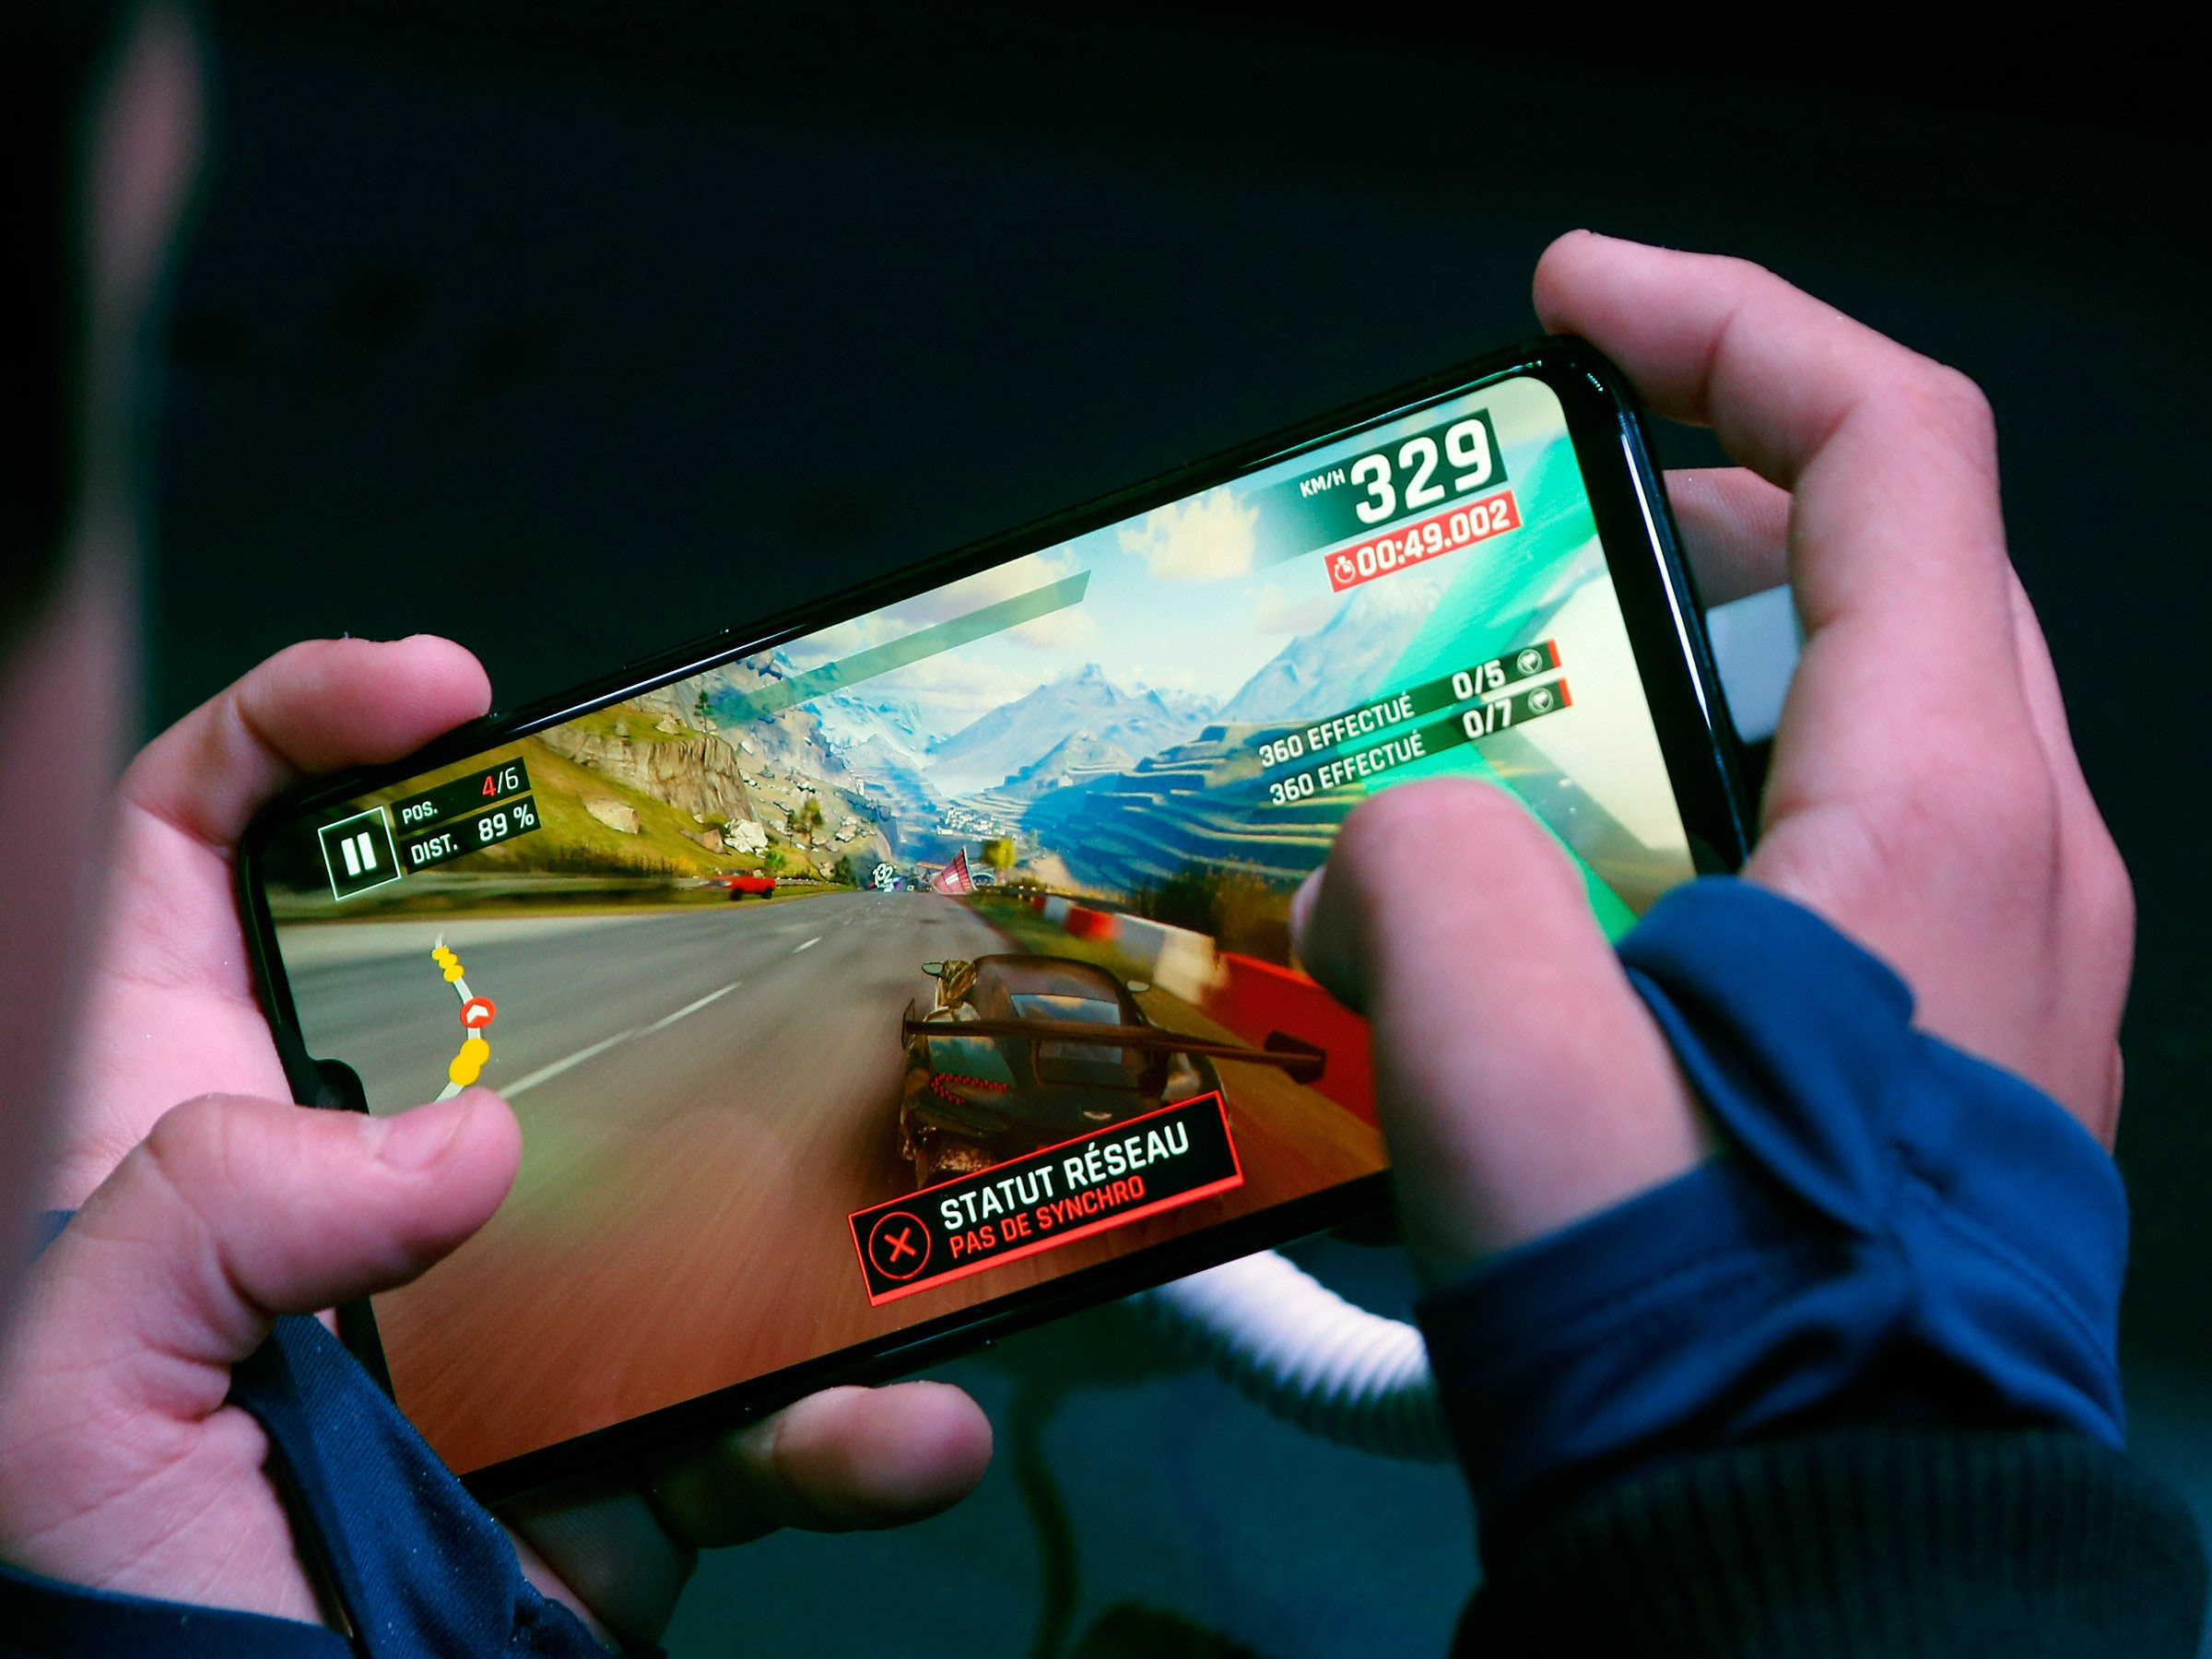 What Is a High Refresh Rate? Frame Rate? (Phones, TVs, Monitors)